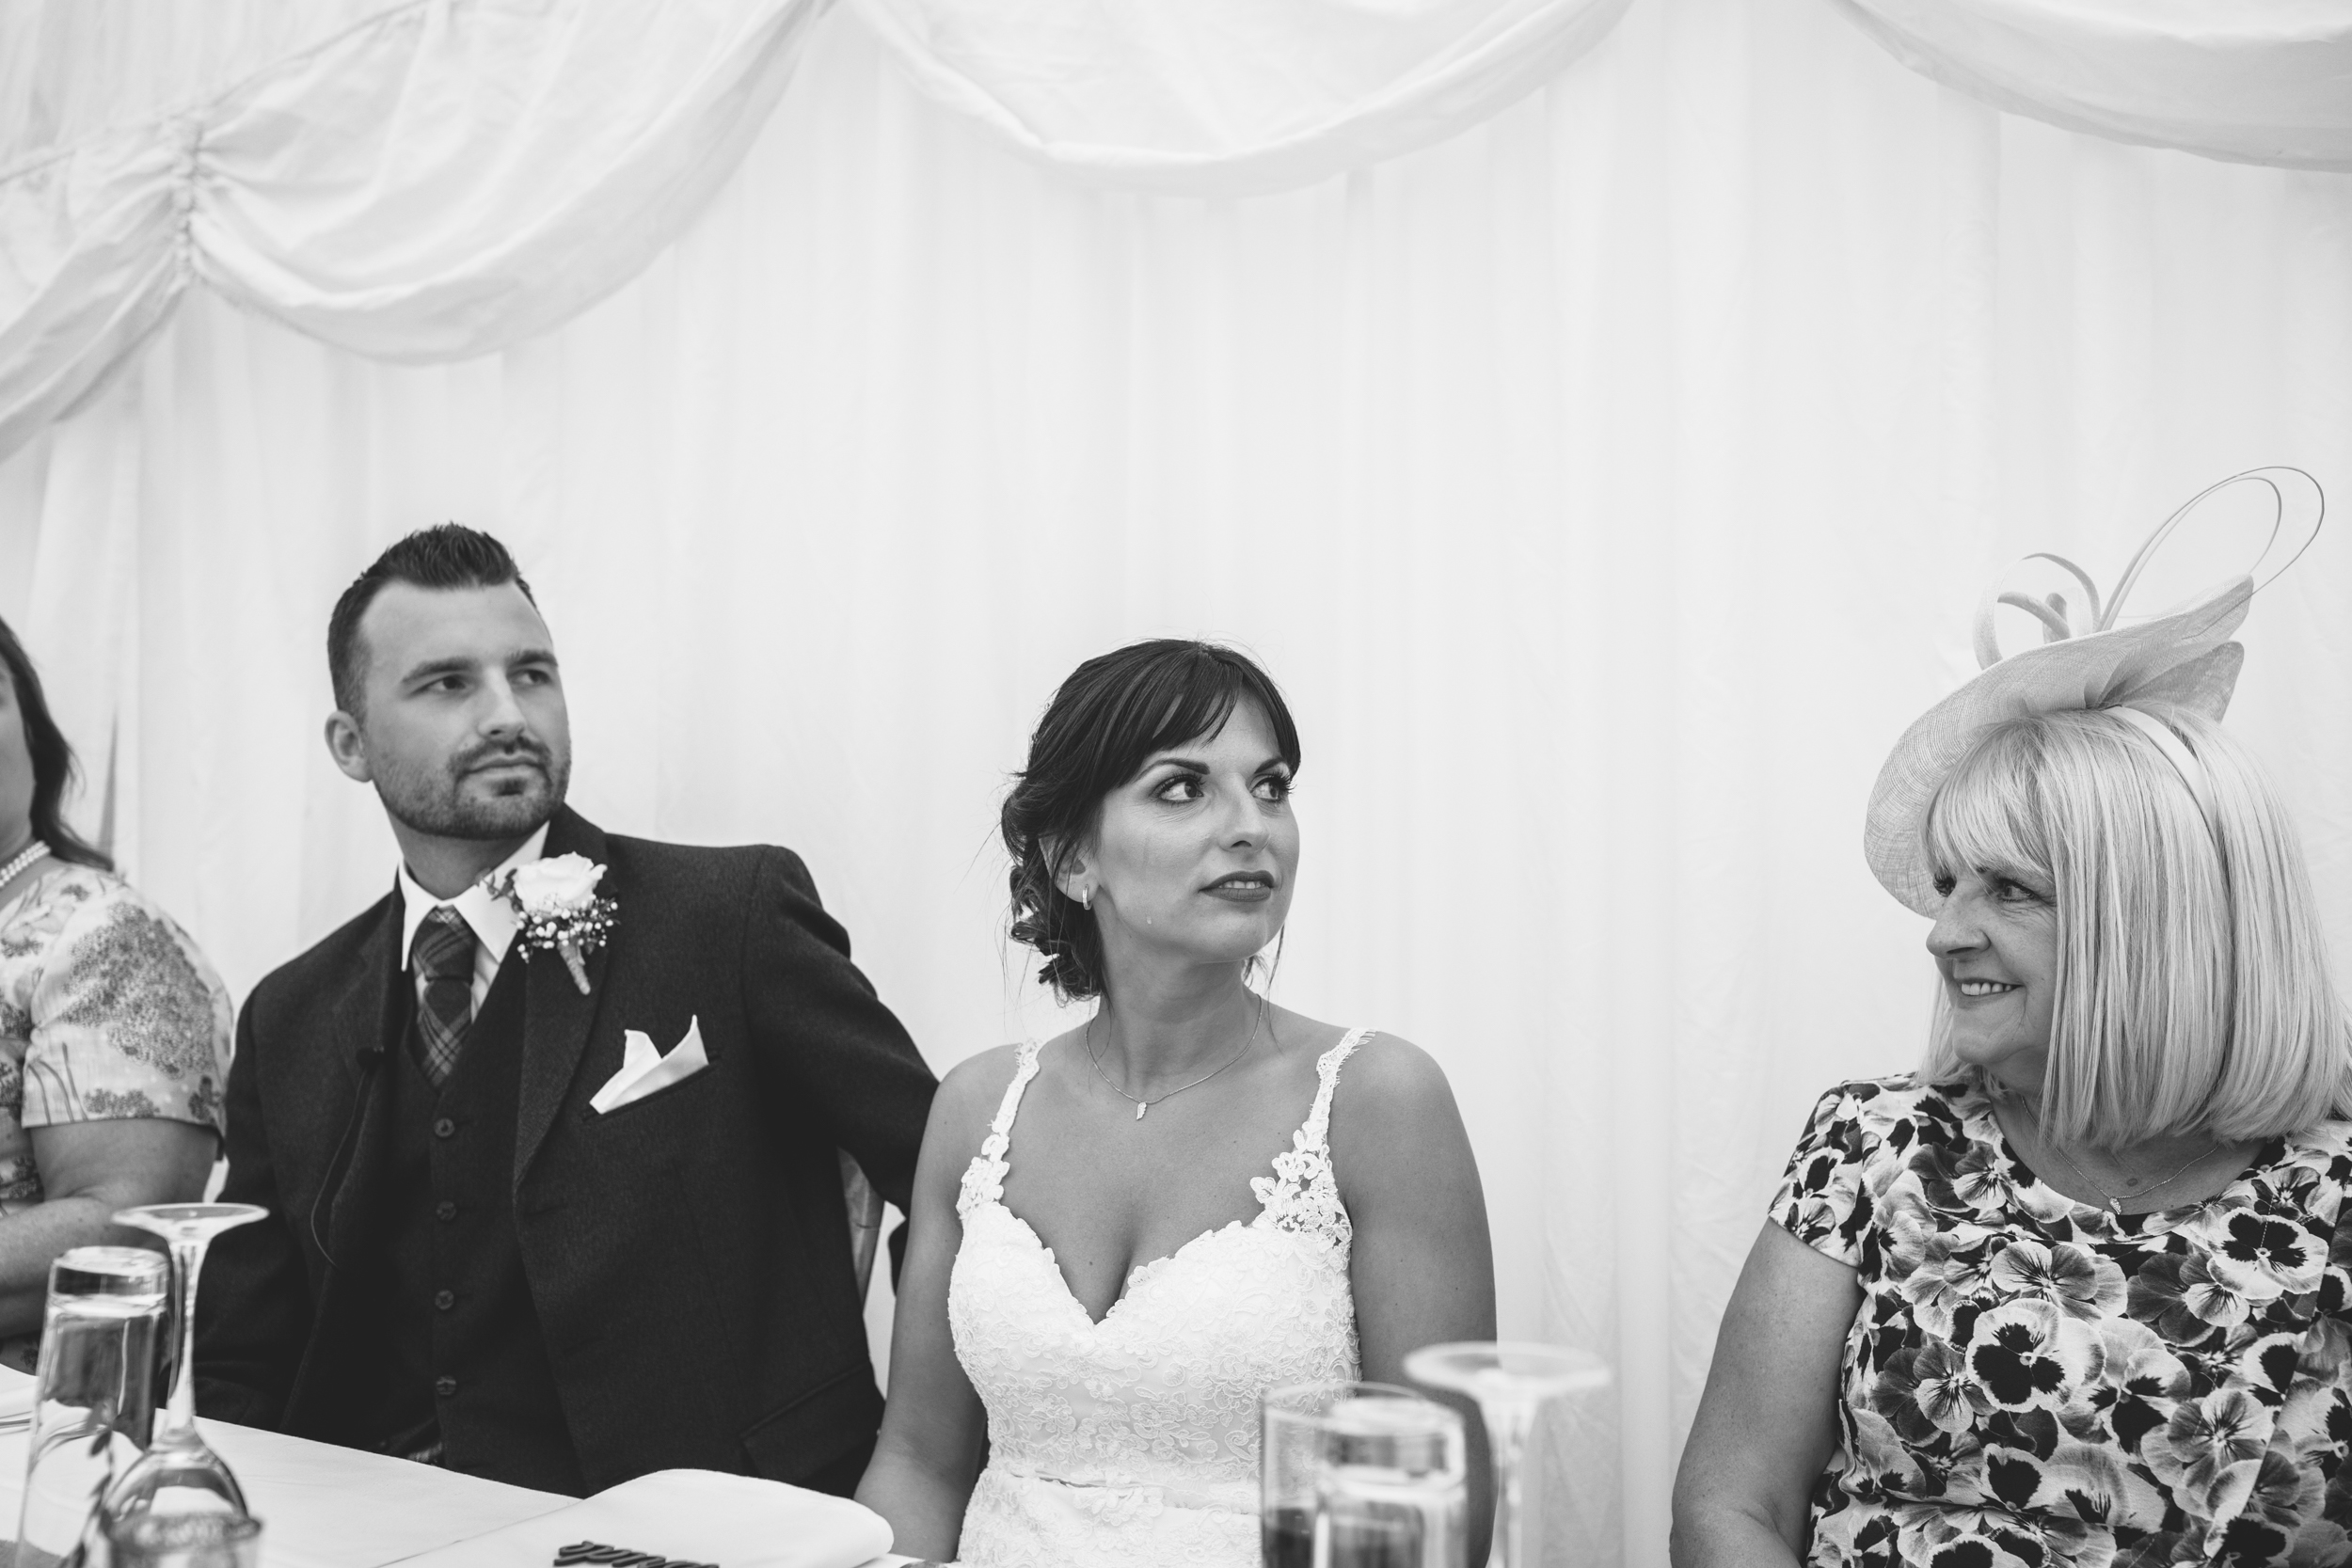 weddingphotographyaberdeenshire (36 of 51).jpg